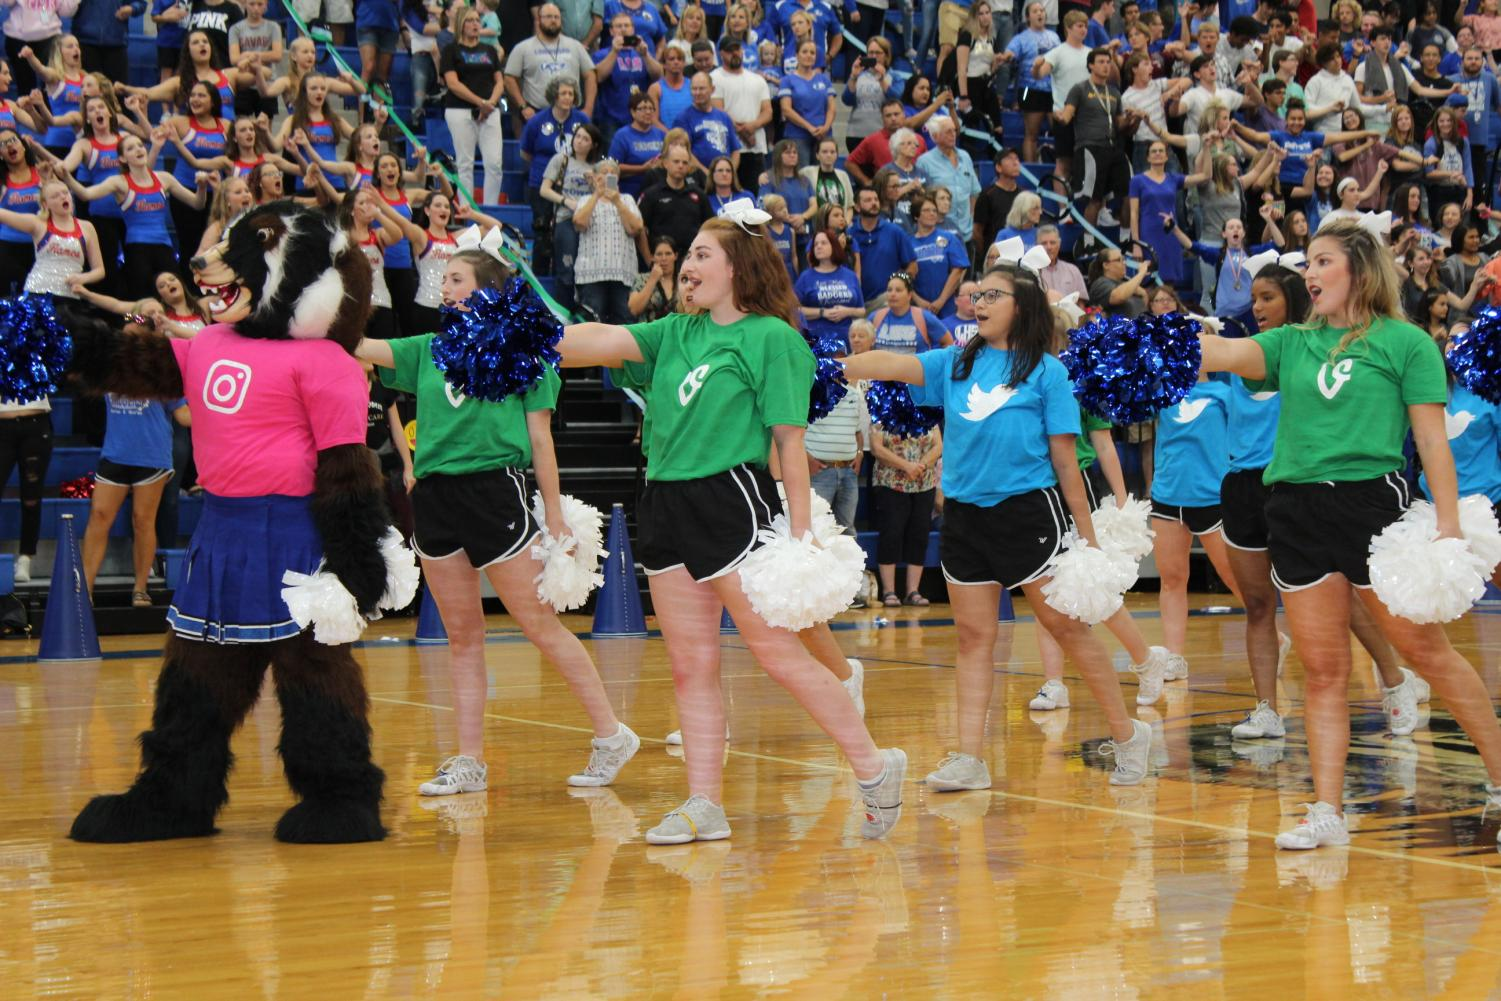 Bailey Badger (freshman Taran Garnett) leads cheerleaders, captain Melanie Burbey, co-captain Makenzie McLendon, Tiana Gurrera, co-captain Victoria Martinez  and Kelcie Roper in the school song at the end of the first pep rally.